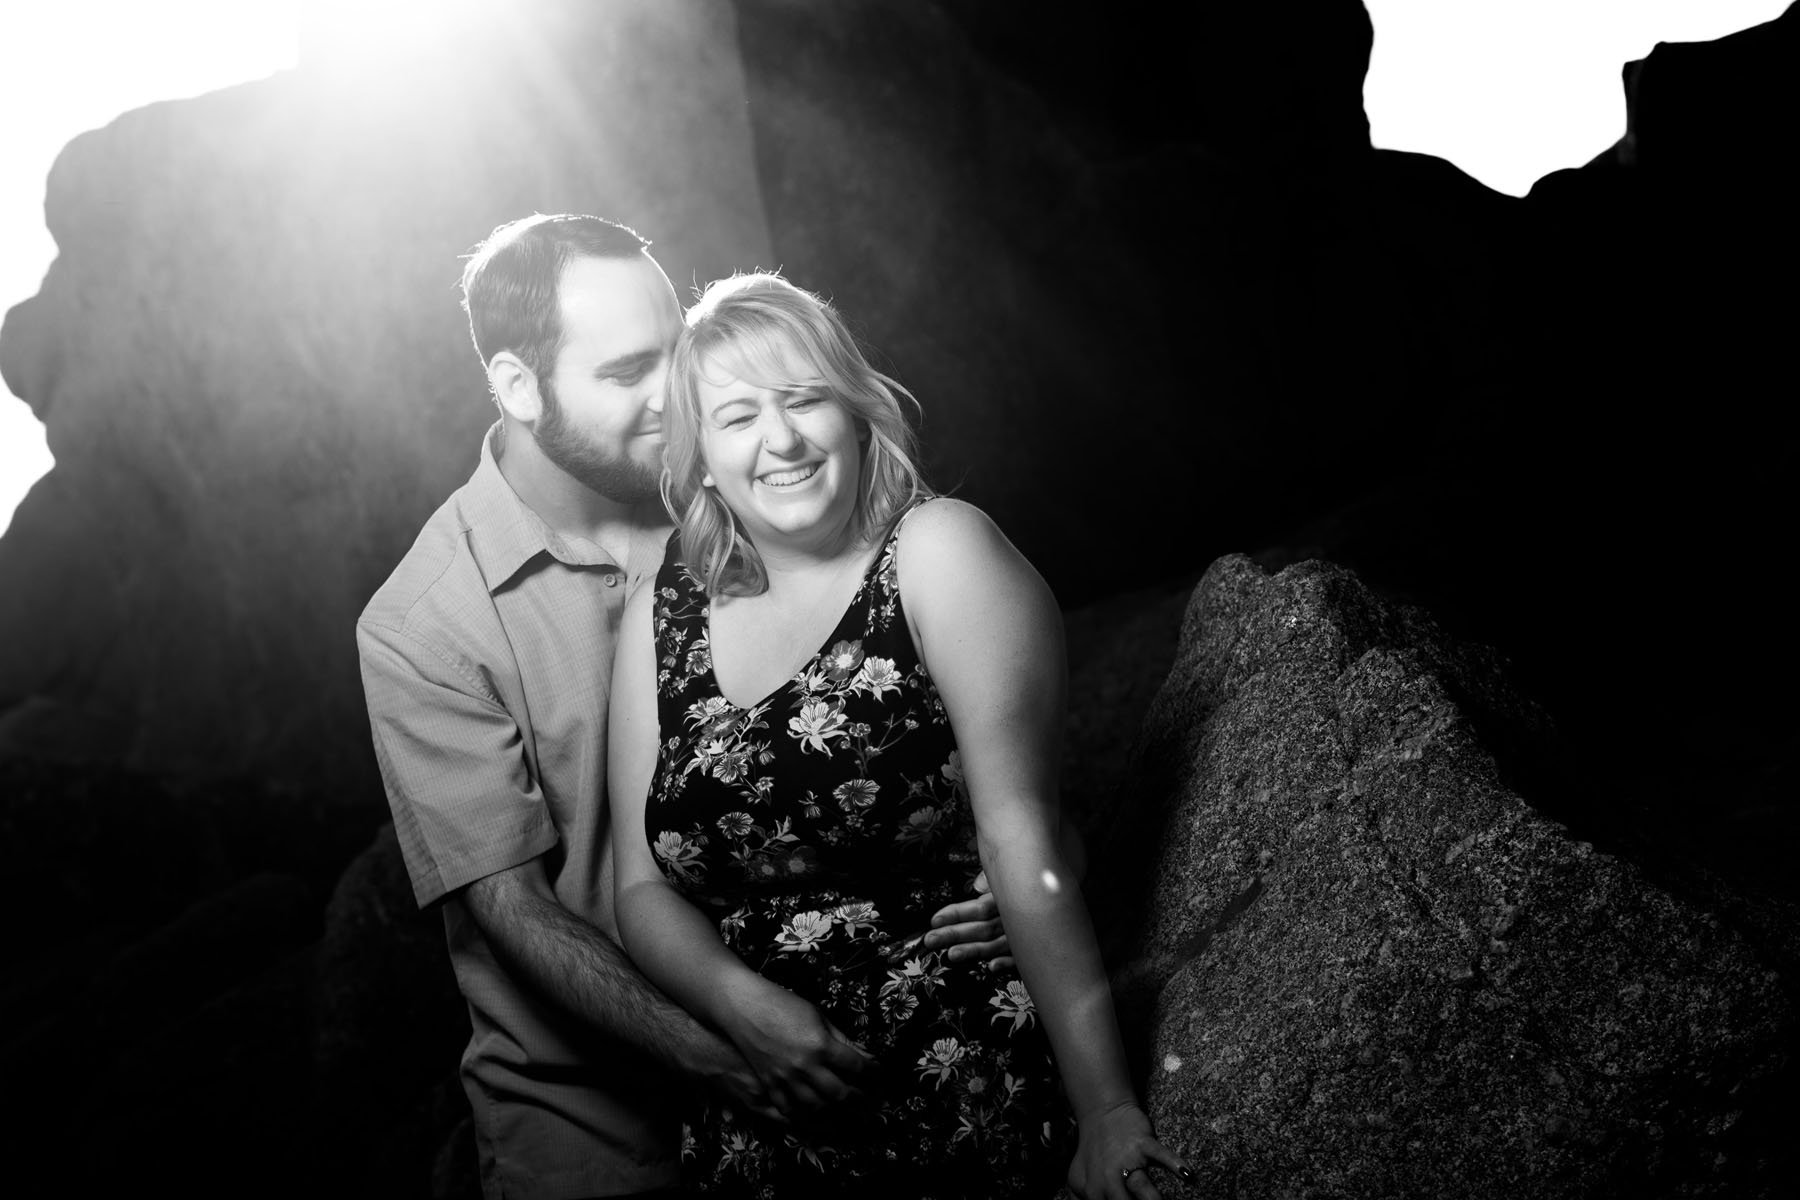 couple cuddling b&w sun flare - Stewart's Cove - Carmel Engagement Photography - photos by Bay Area wedding photographer Chris Schmauch